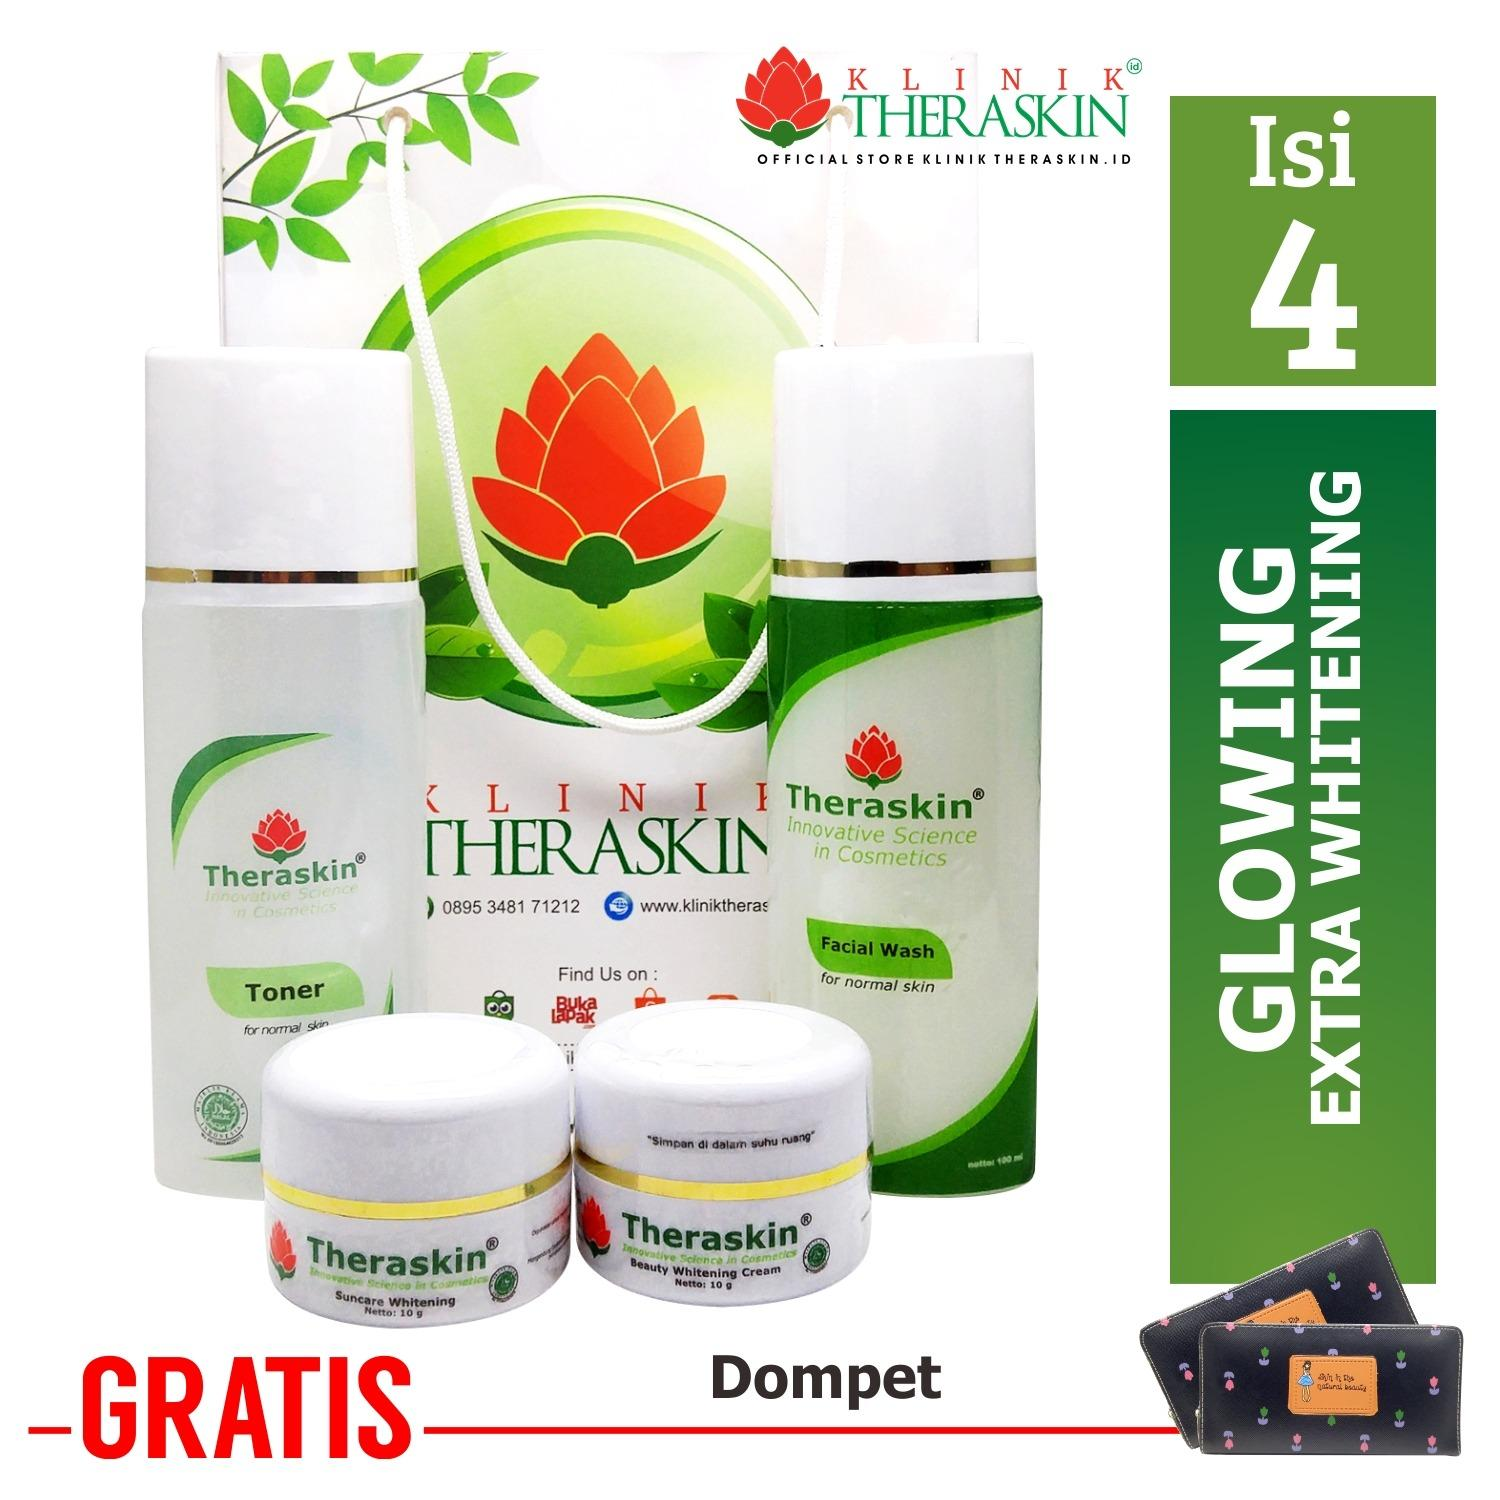 Cream Theraskin Glowing with Extra Whitening Isi 4 100% Theraskin (Theraskin Glowing Step 3) + Gratis Dompet